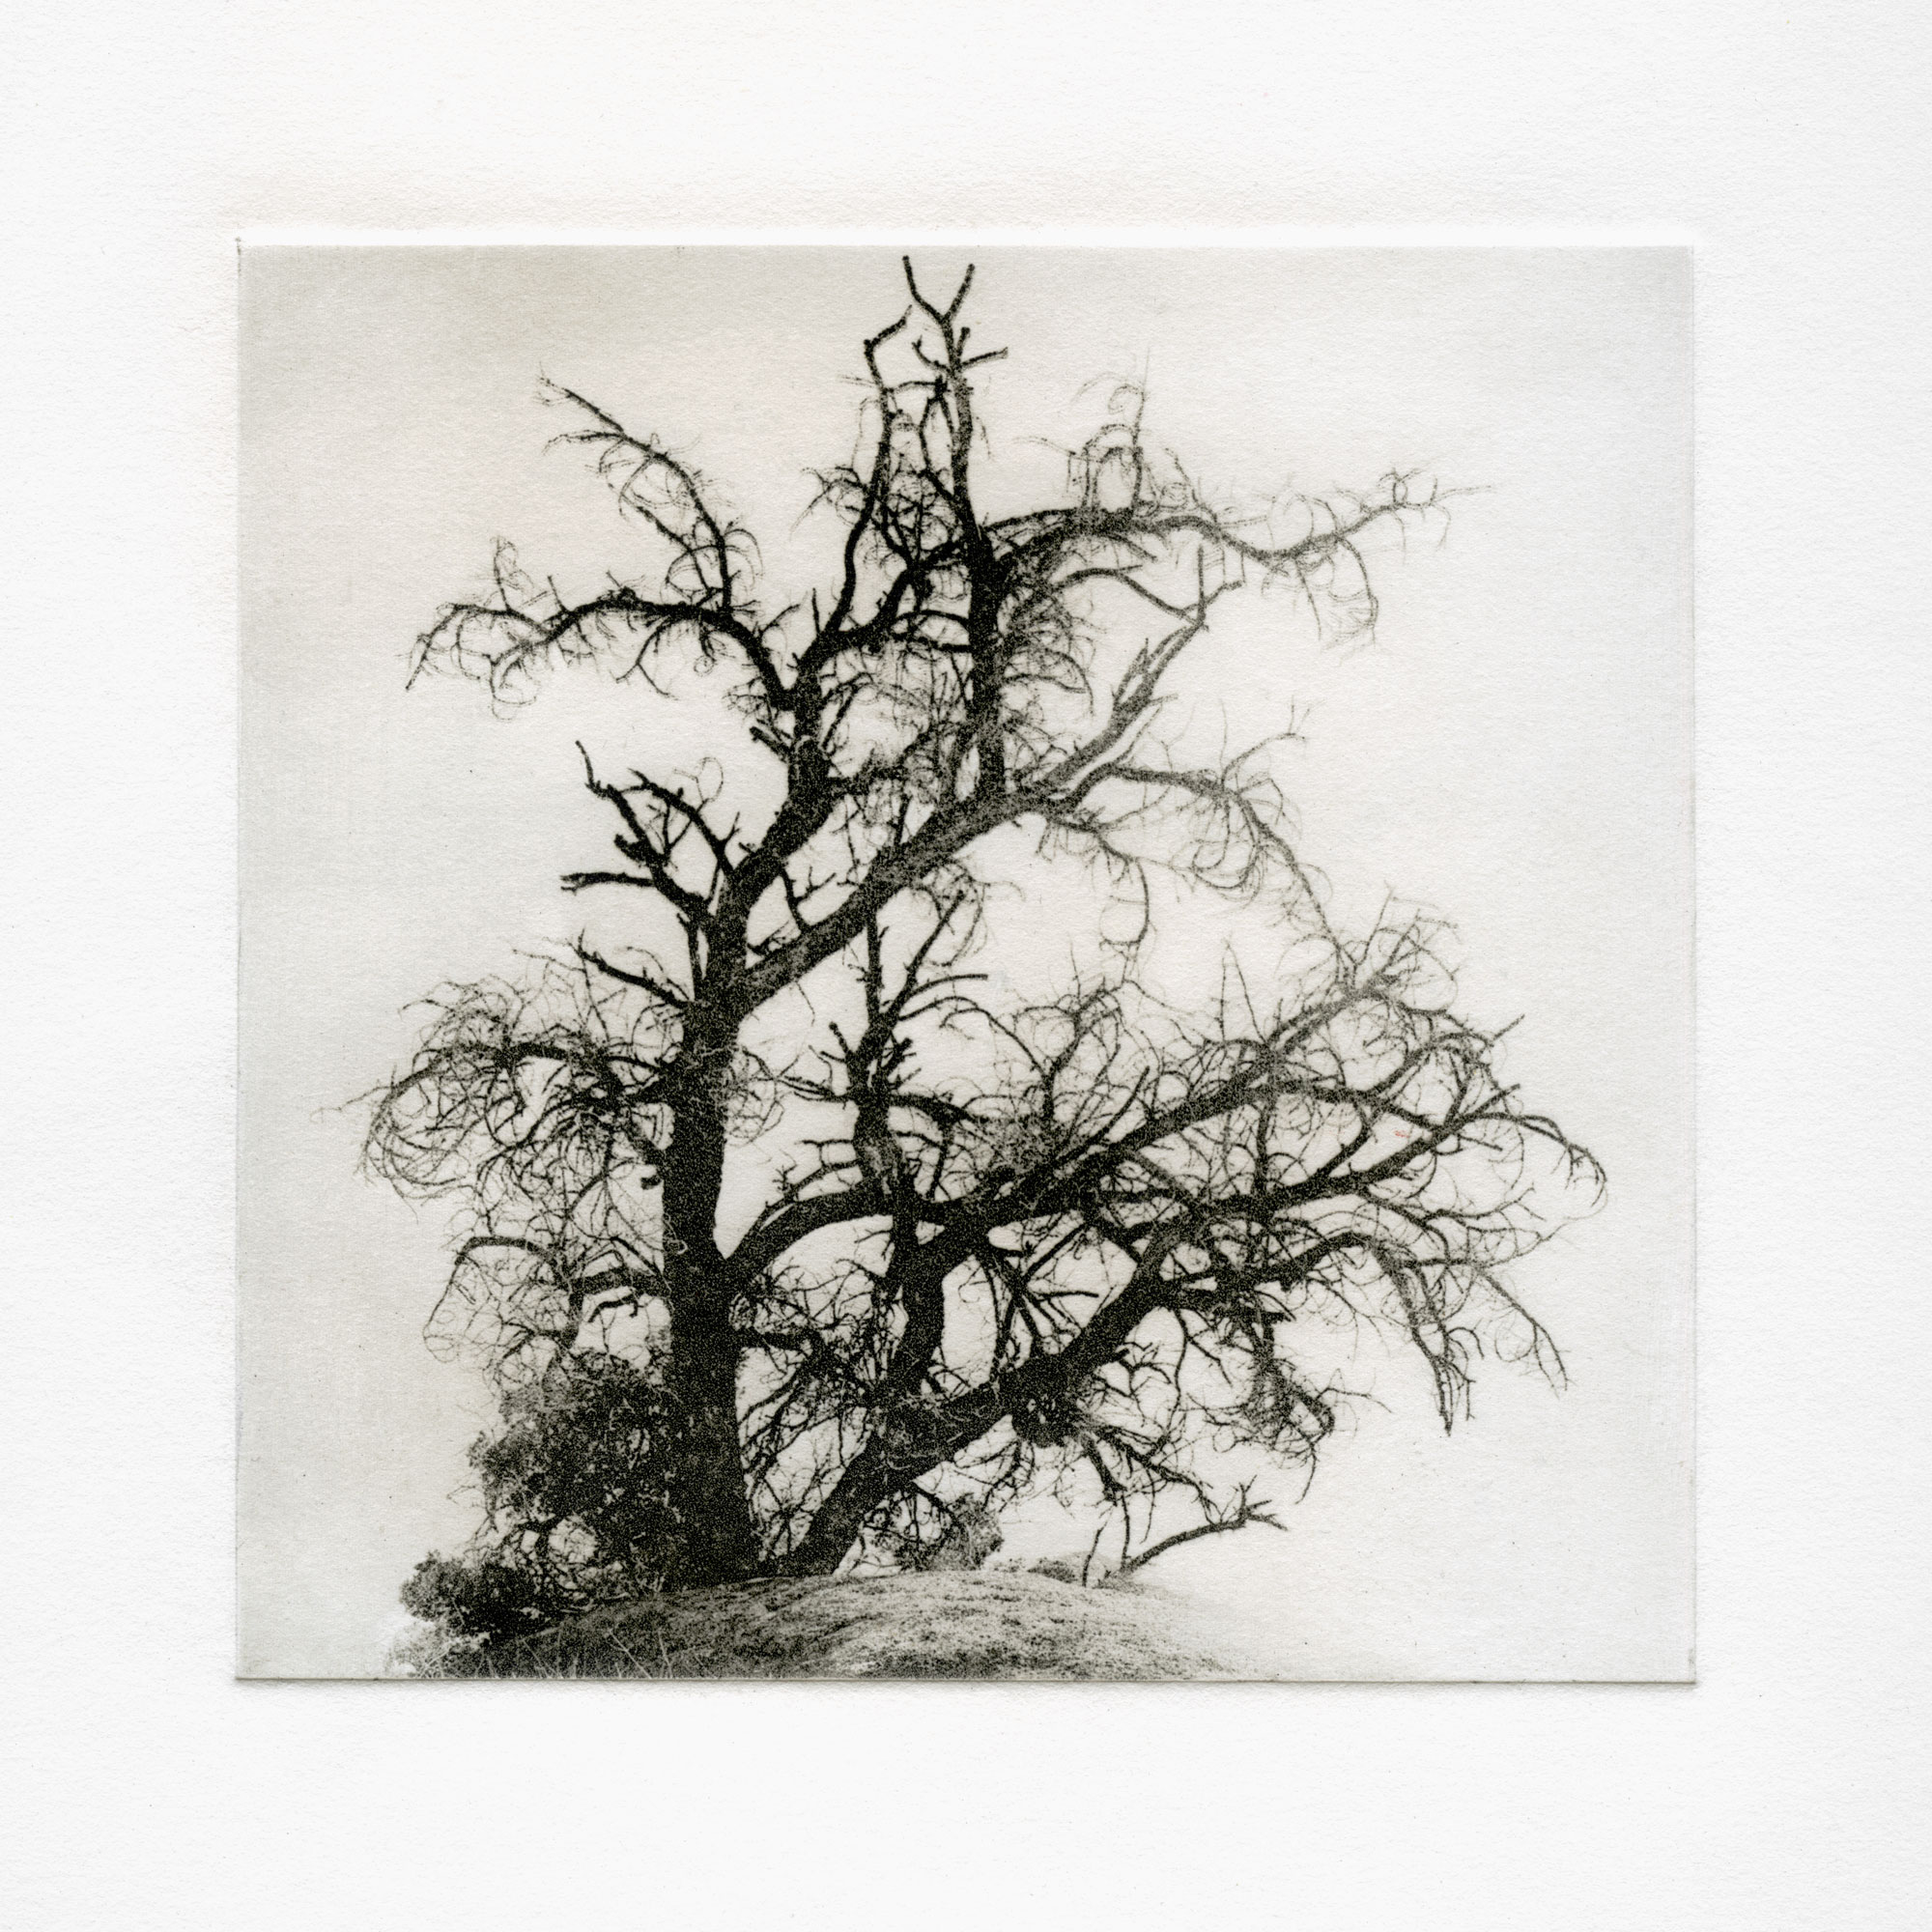 Legacy: Polymer Photogravure Etching by Alex Kay